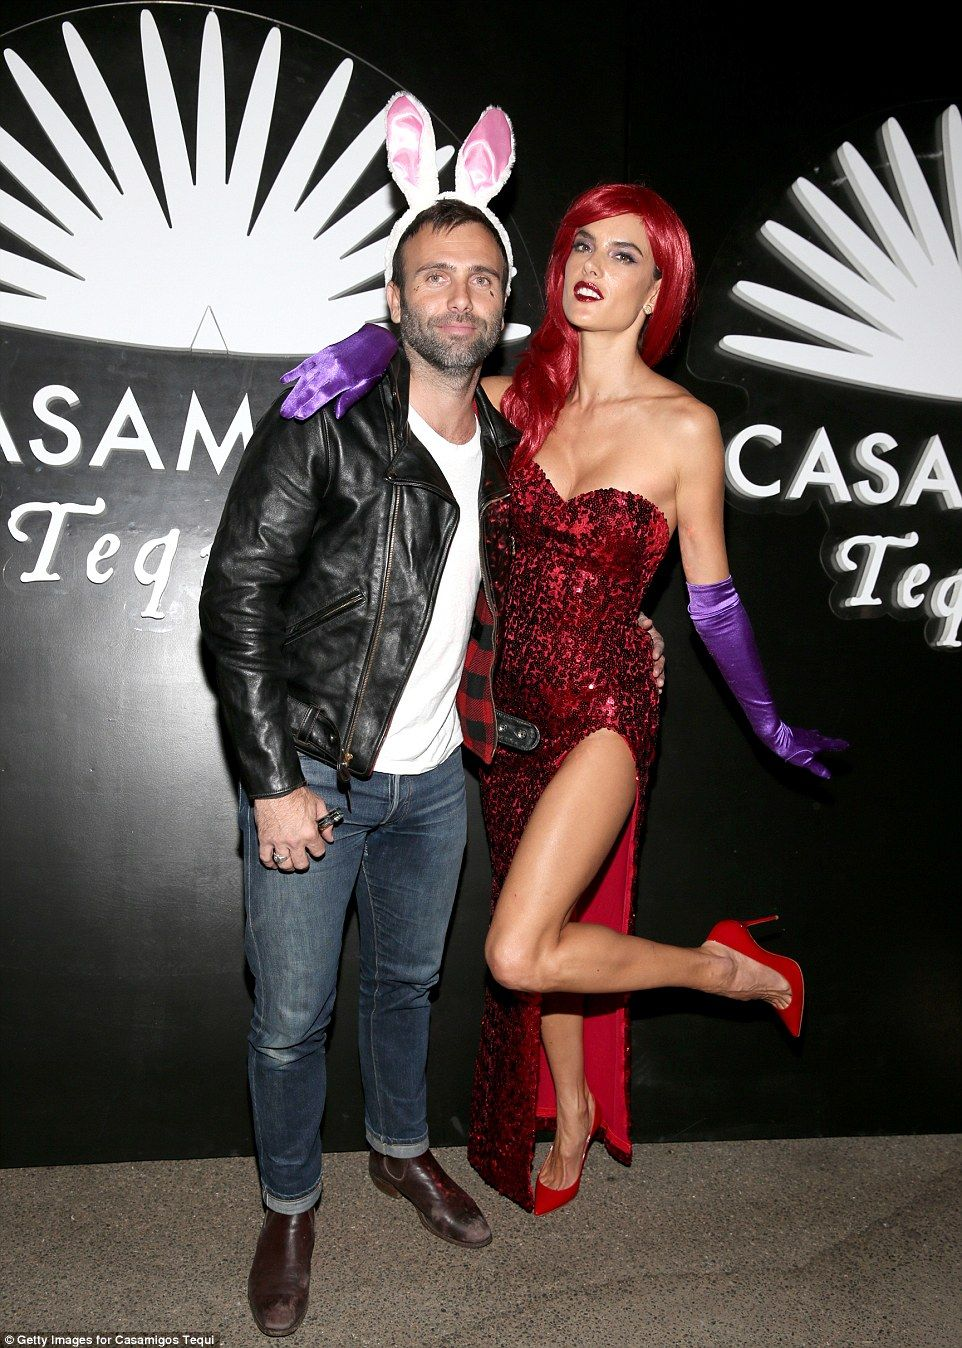 Victoria's Secret model Alessandra Ambrosio drew inspiration from Heidi Klum's costume last year as she channeled Jessica Rabbit, while her fiance Jamie Mazur dressed down in a leather jacket and blue jeans